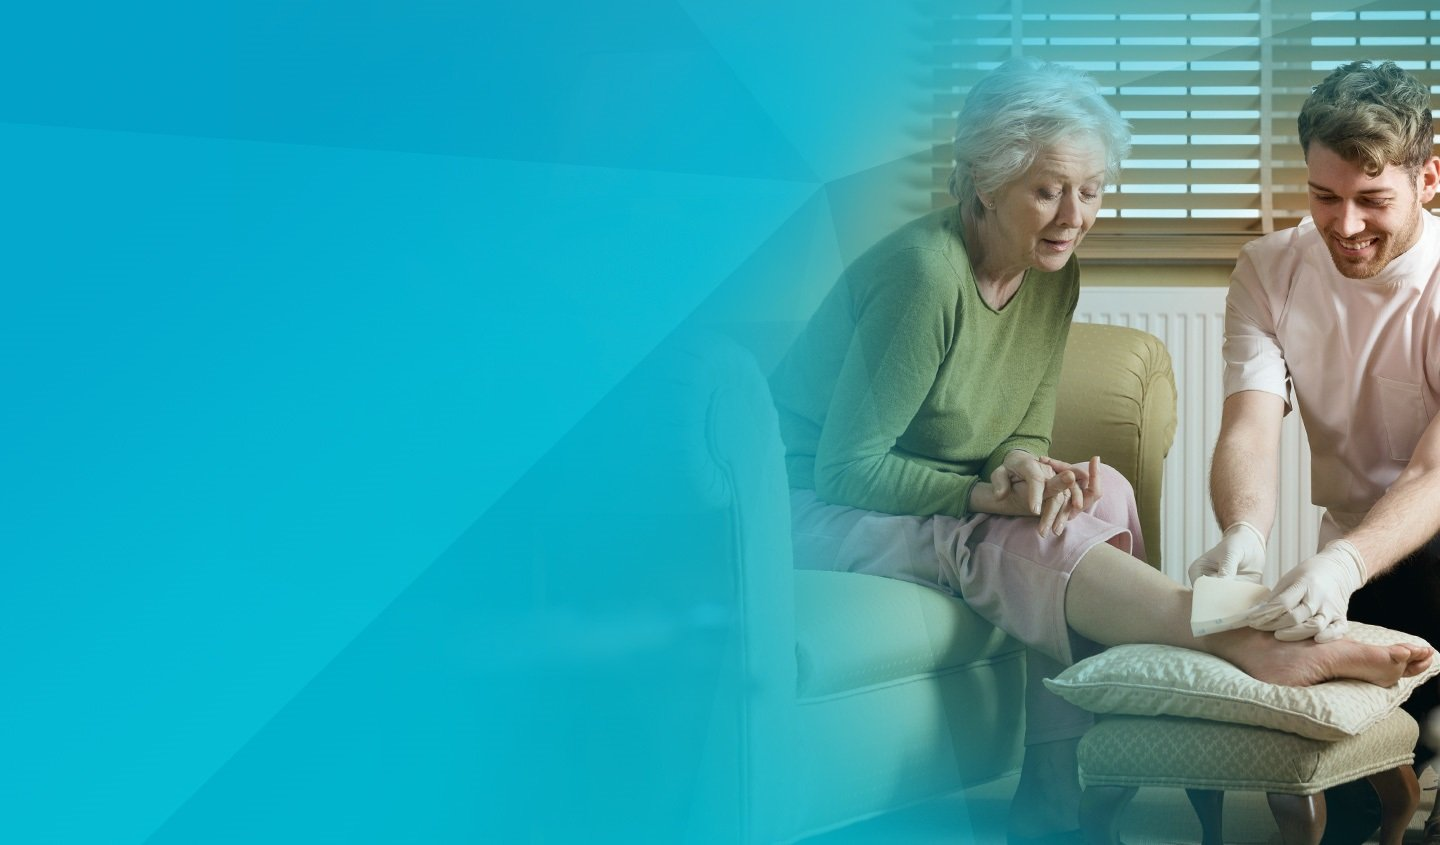 A care taker is bandaging a woman's leg